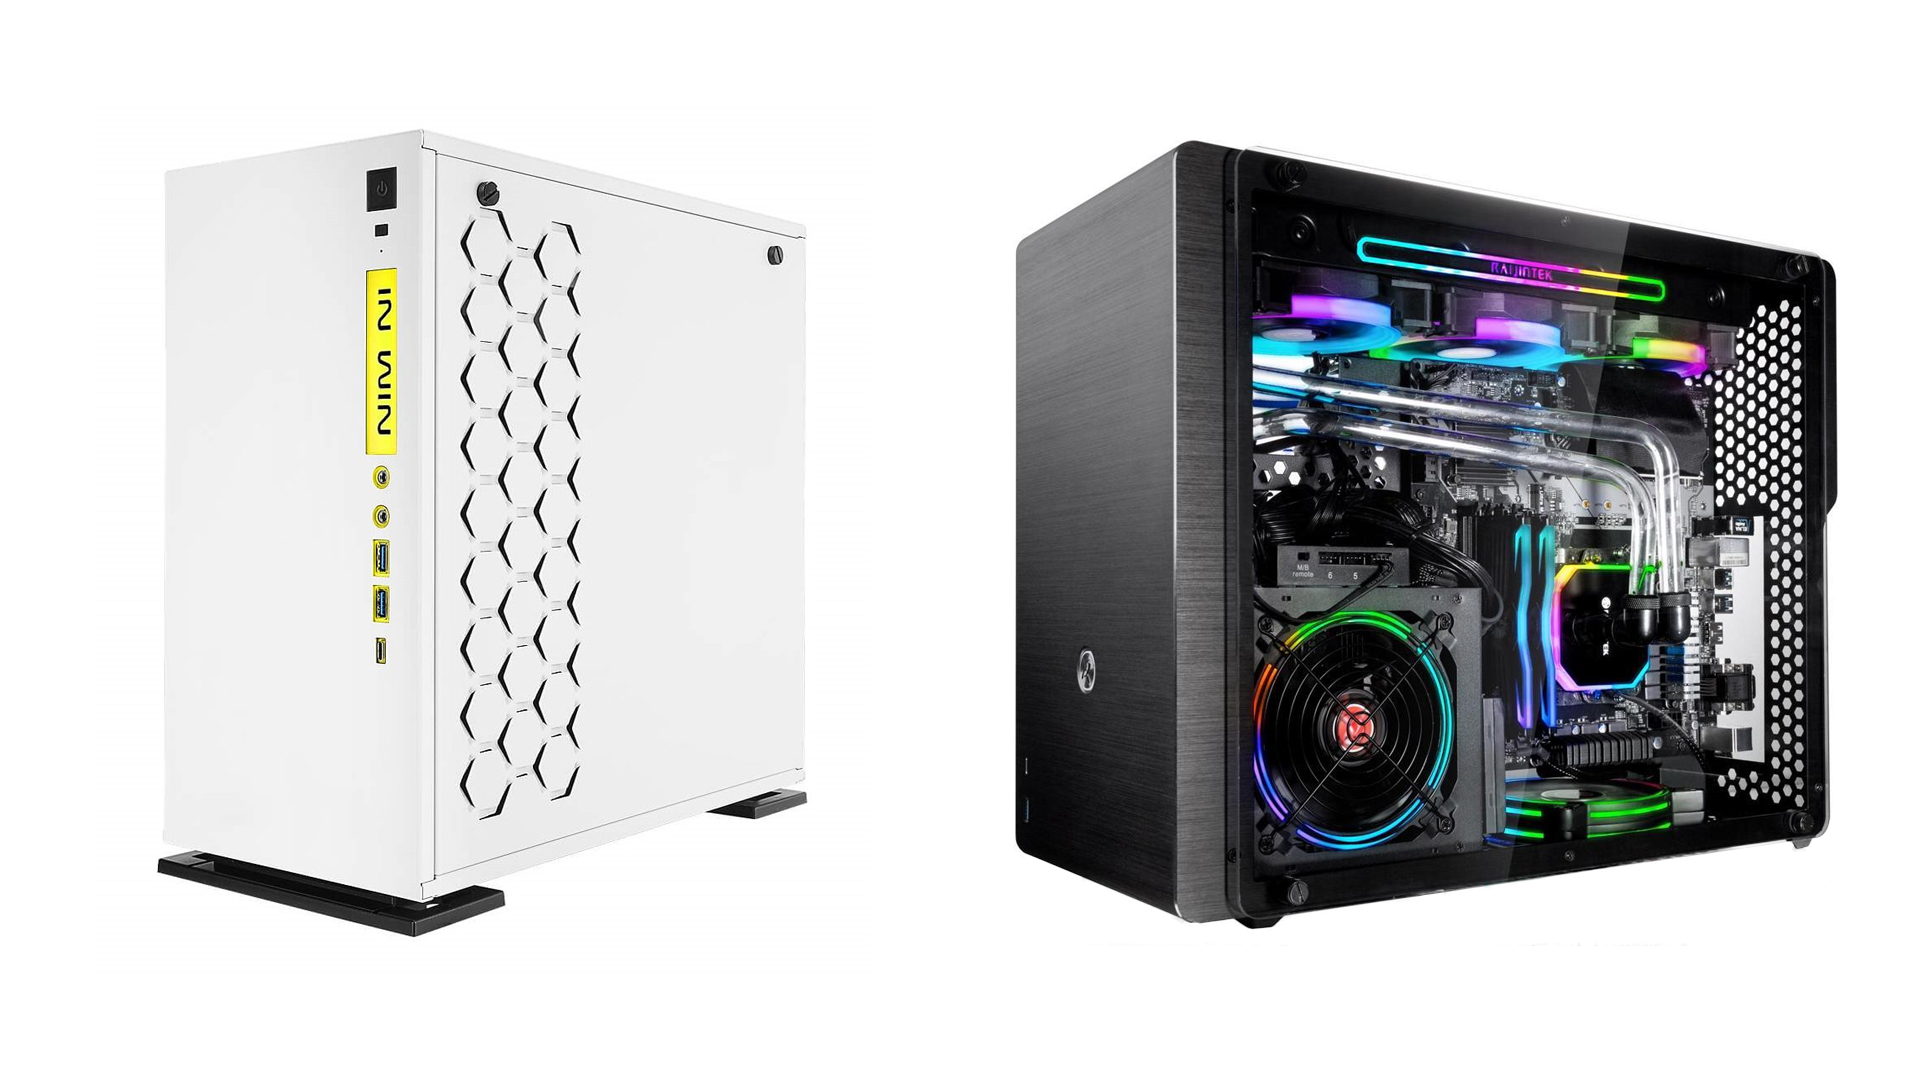 The InWin 301C and the OPHION M EVO ALS